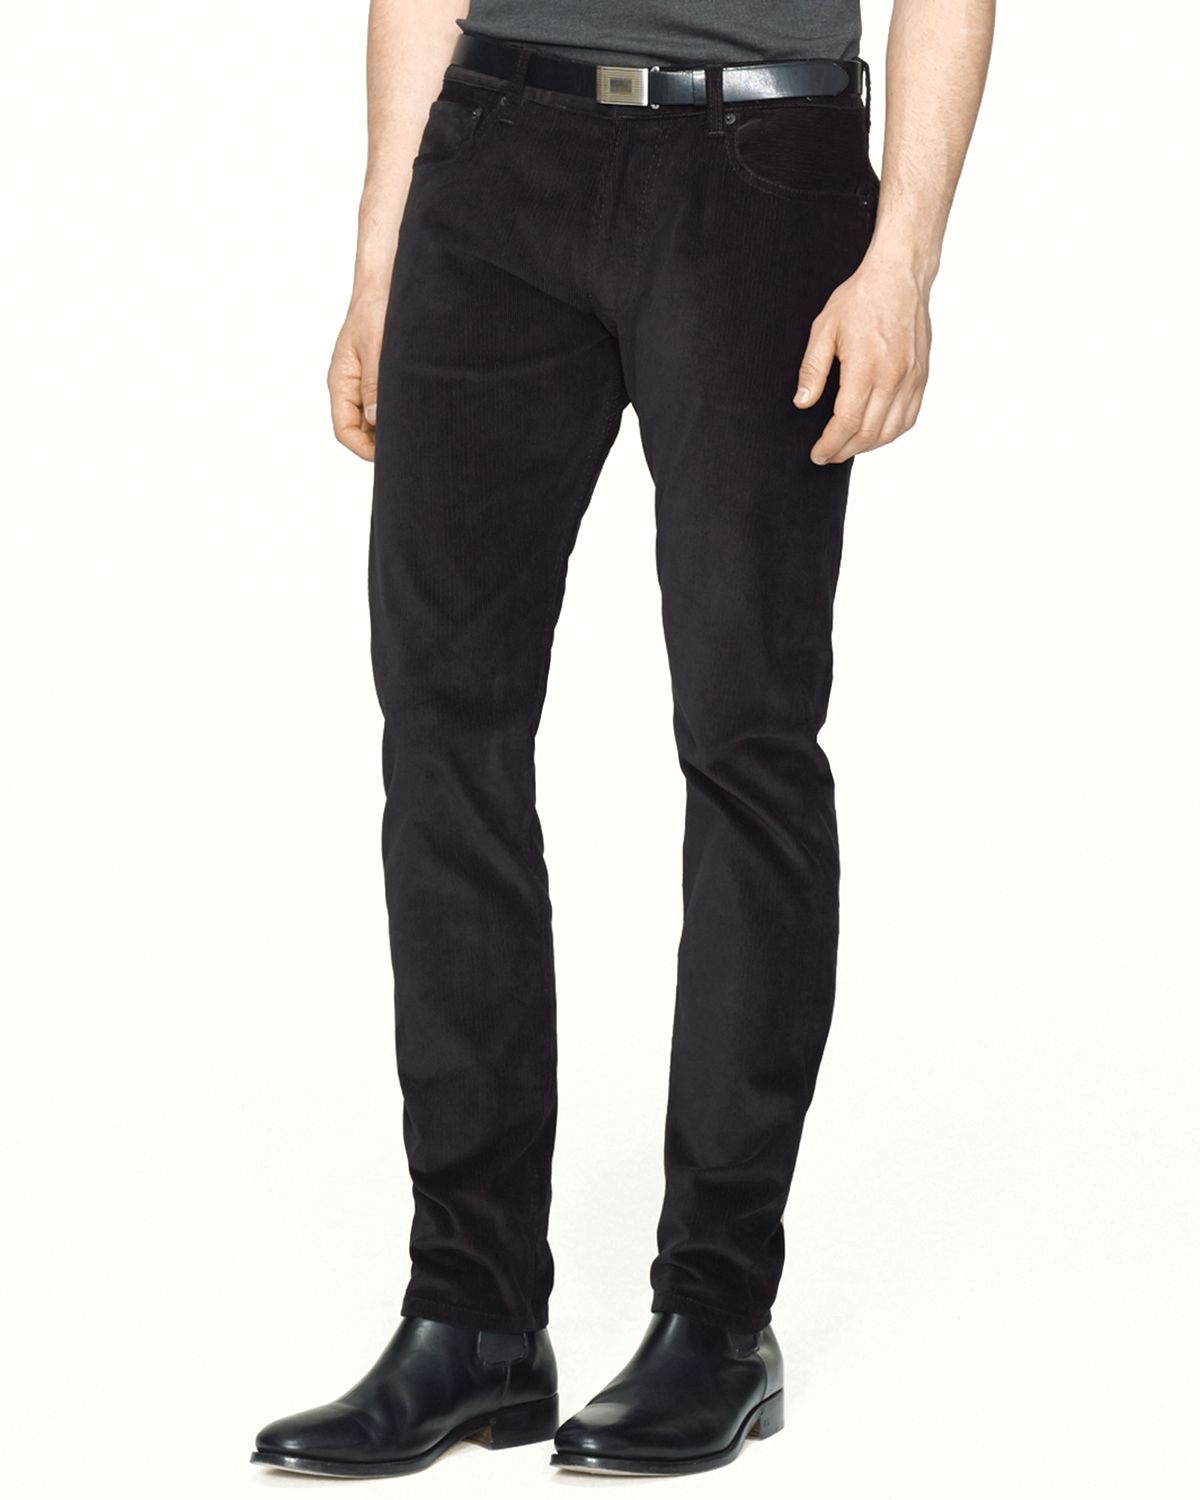 A great pair of black corduroy pants look fantastic at work, on dates, during casual parties and for a number of other functions. Corduroys are a vital part of men's pants, and there are many options for women's and juniors as well.